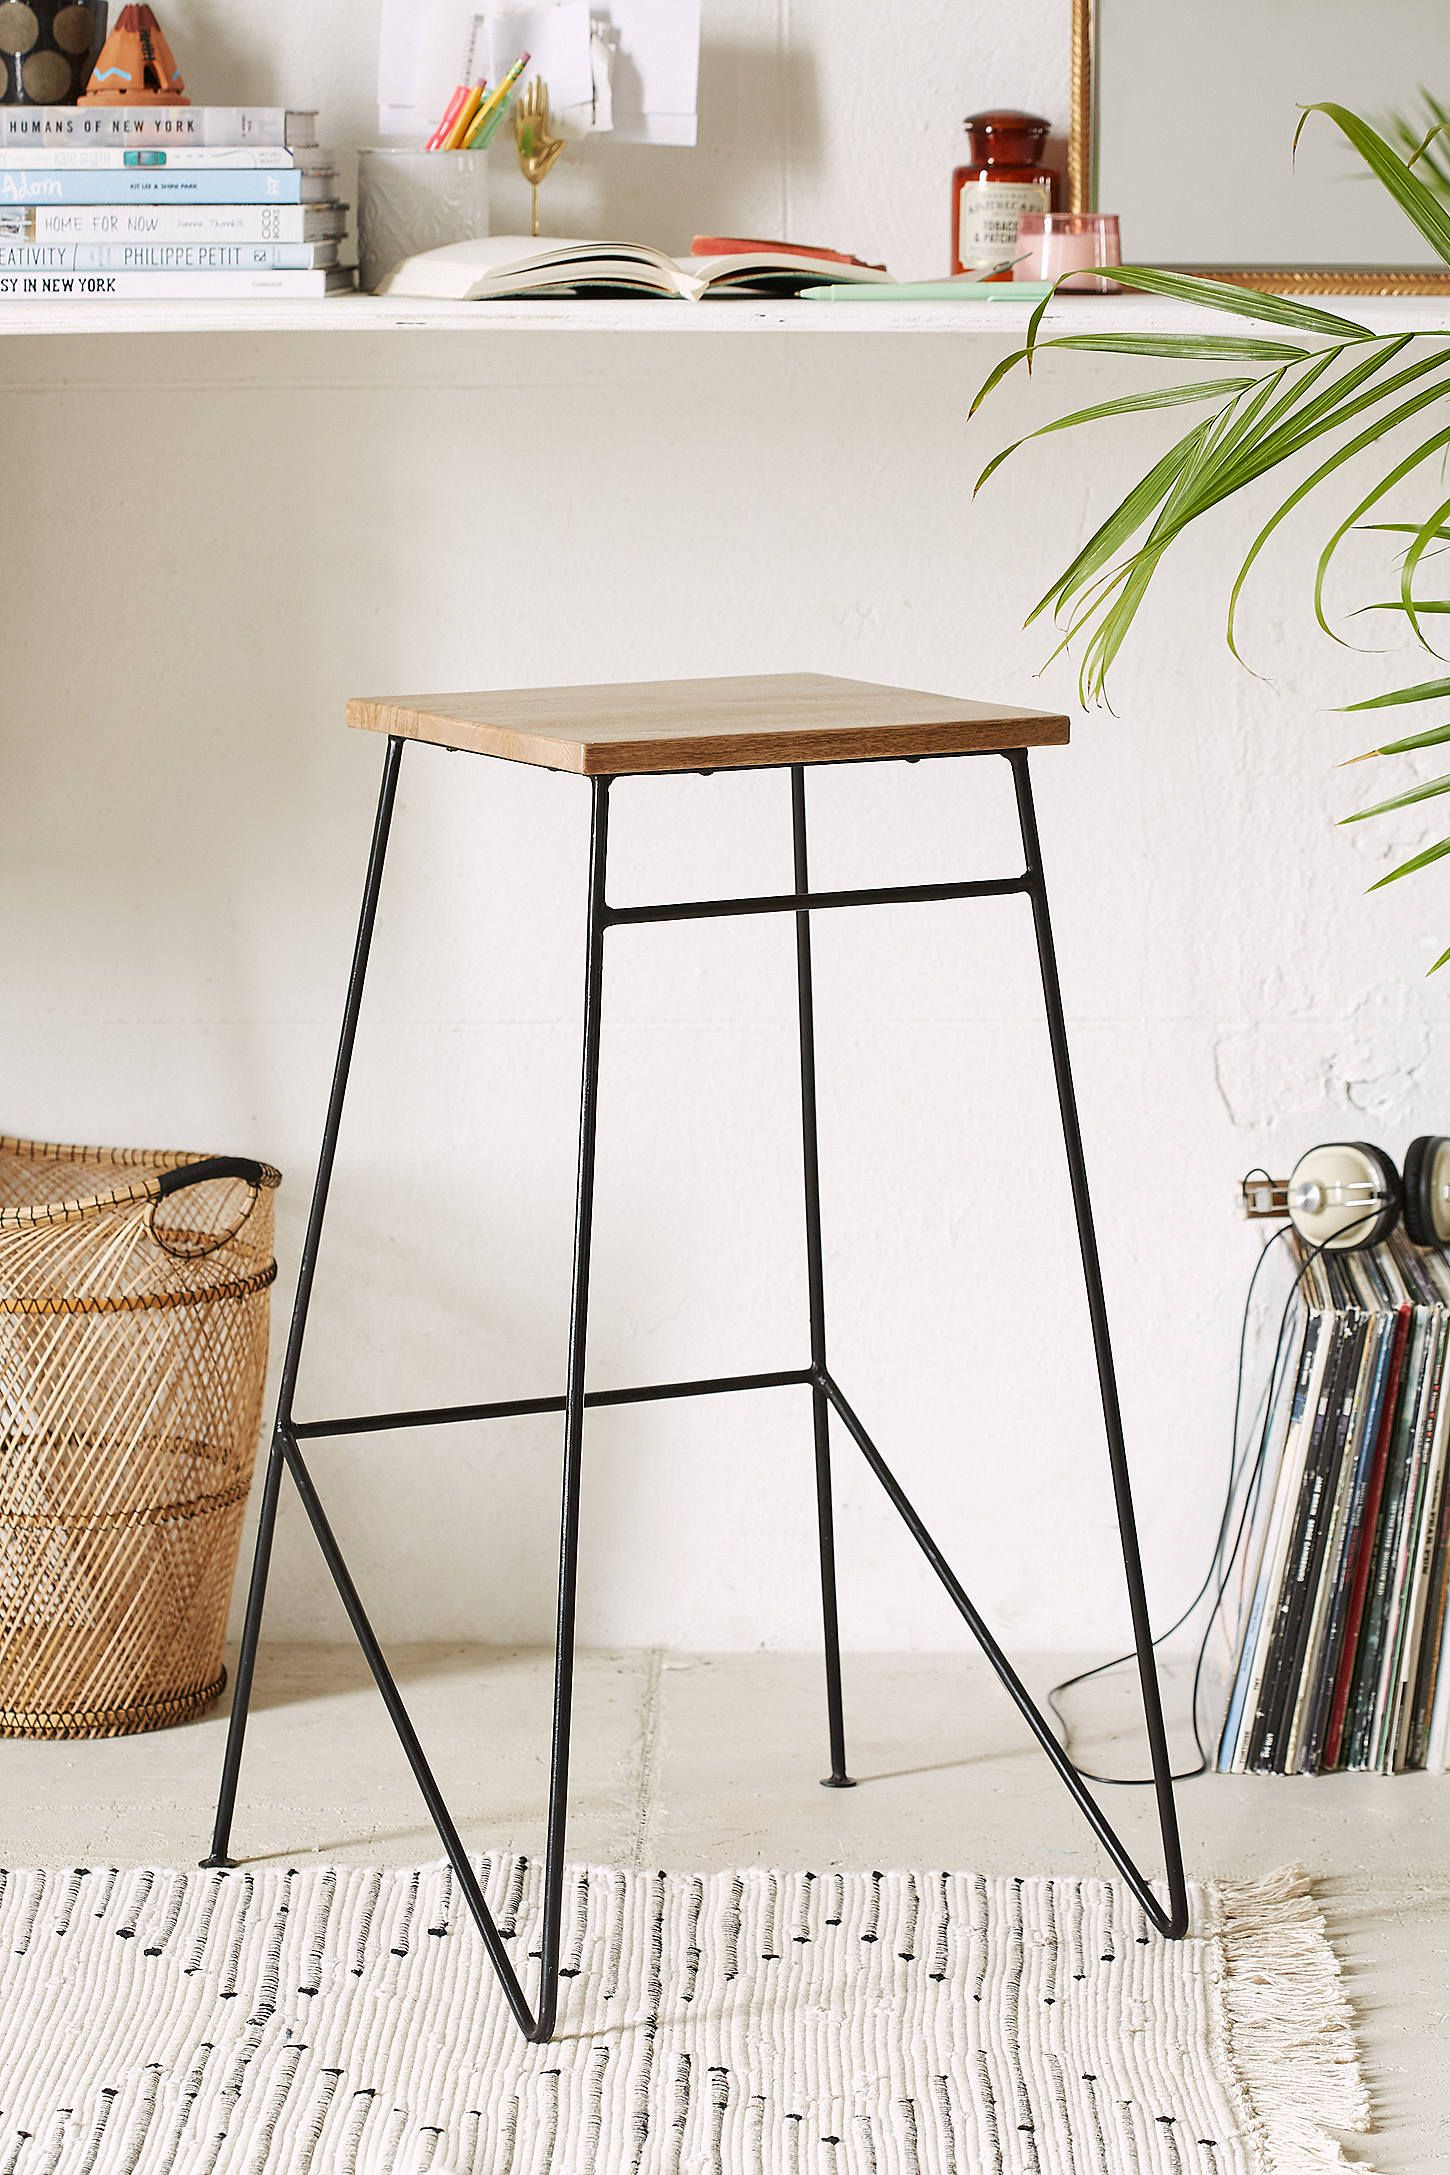 Stool At Urban Outers Today We Carry All The Latest Styles Colors And Brands For You To Choose From Right Here